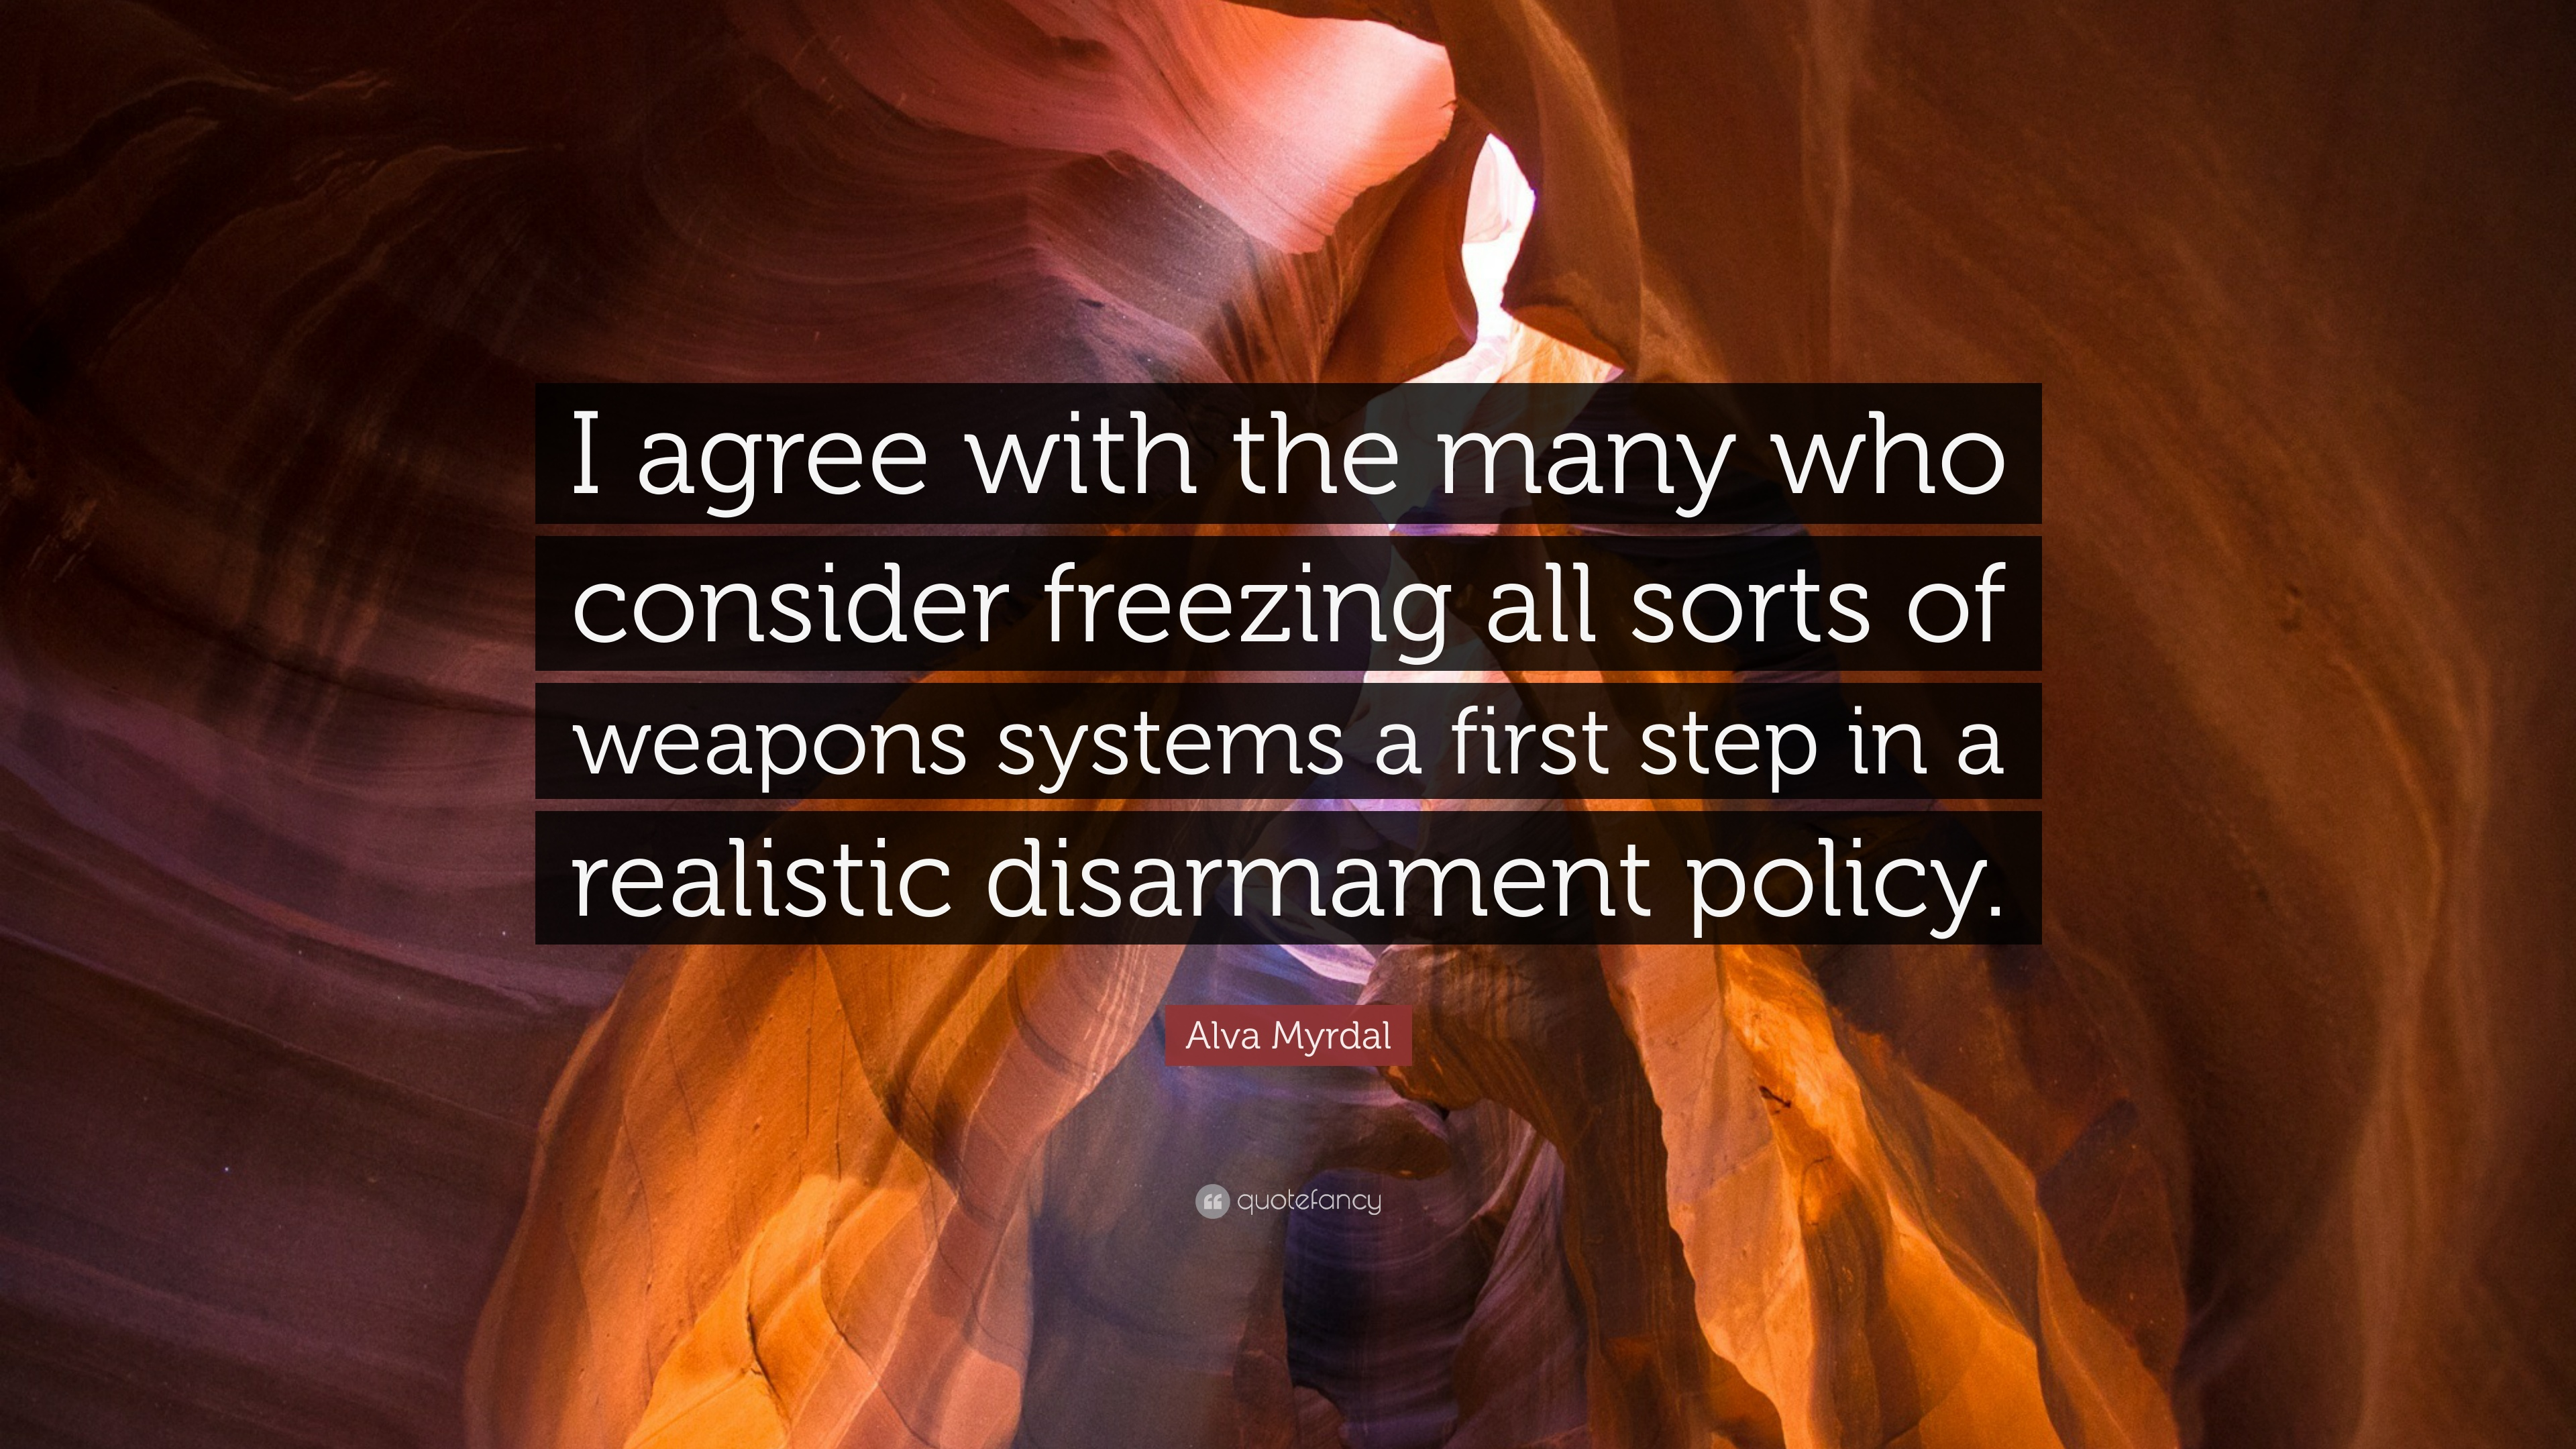 Alva Myrdal Quote I Agree With The Many Who Consider Freezing All Sorts Of Weapons Systems A First Step In A Realistic Disarmament Policy 7 Wallpapers Quotefancy